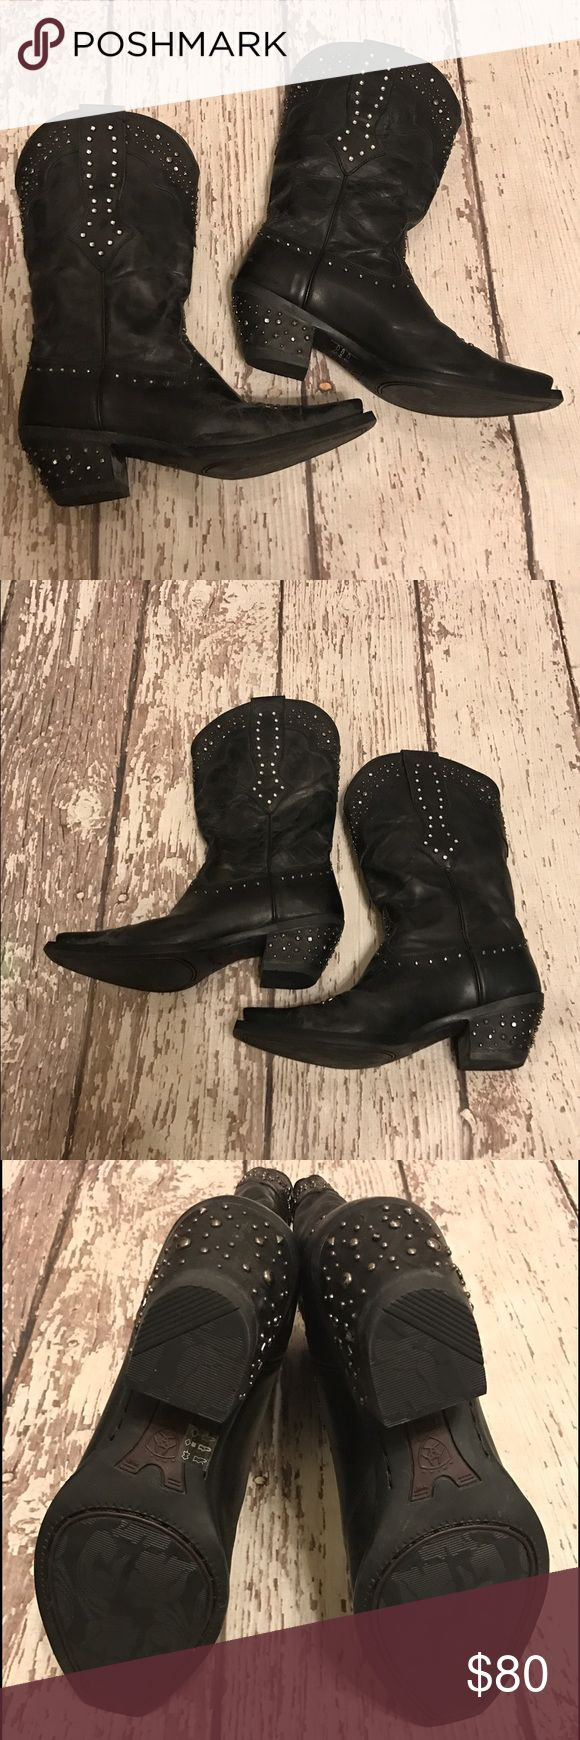 Black Rhinestone Studded Cowboy Boots Weathered black rhinestone cowboy boots. Worn once to sing in at the Oklahoma Opry. Perfect condition. Price is negotiable. Ariat Shoes